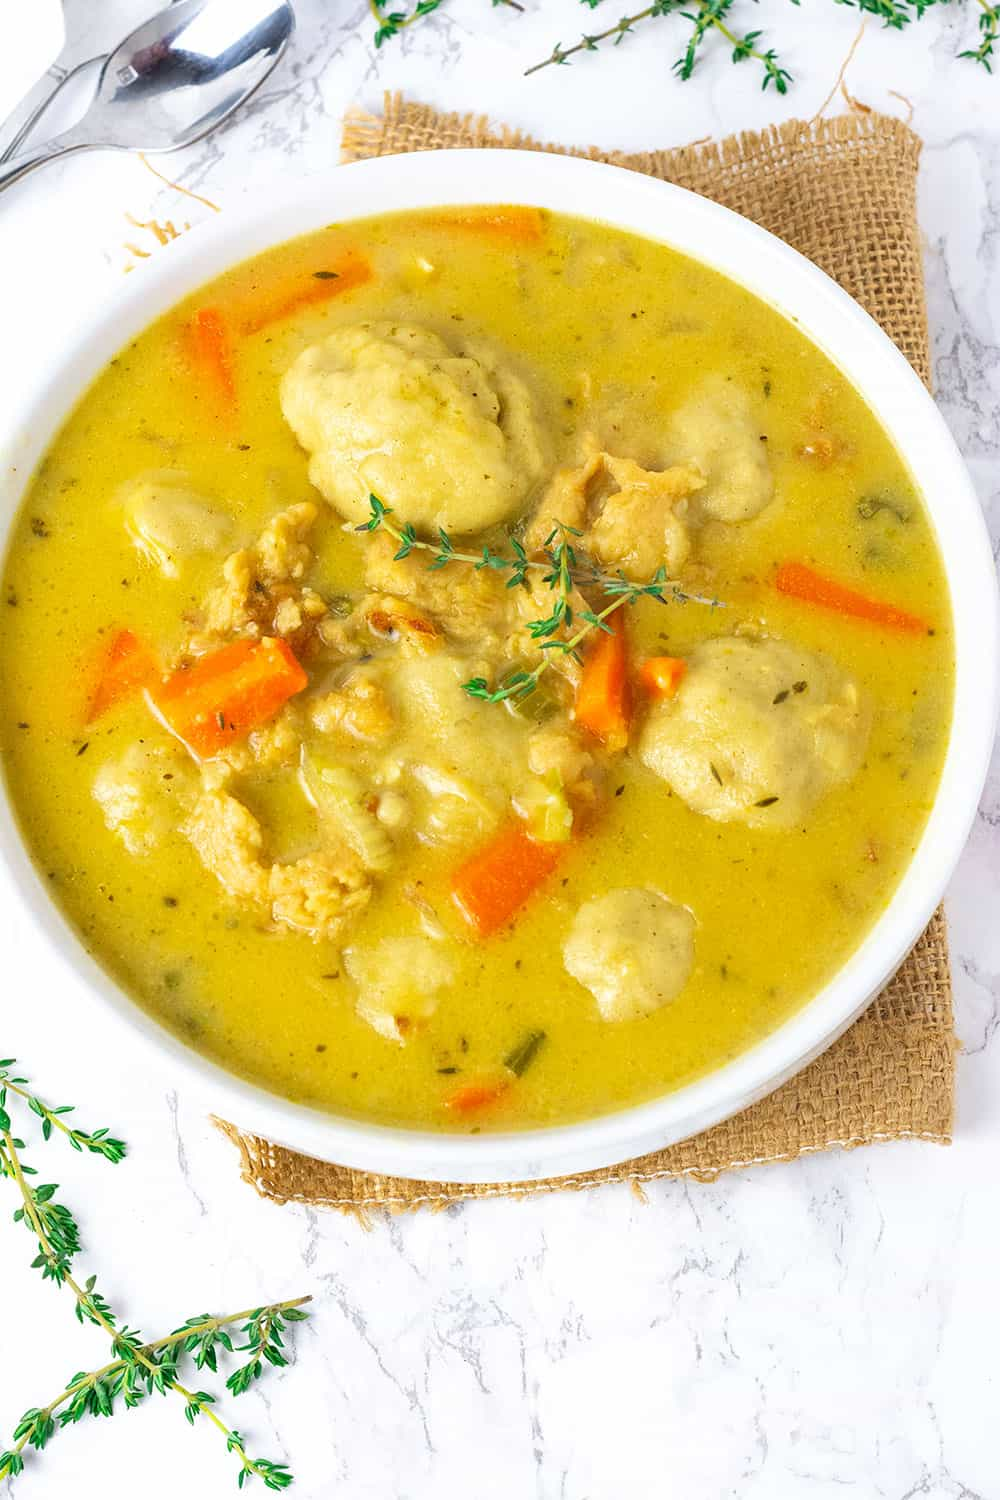 instant Pot vegan chicken dumplings with gluten-free vegan herb dumplings in a white bowl with carrots and garnish with thyme